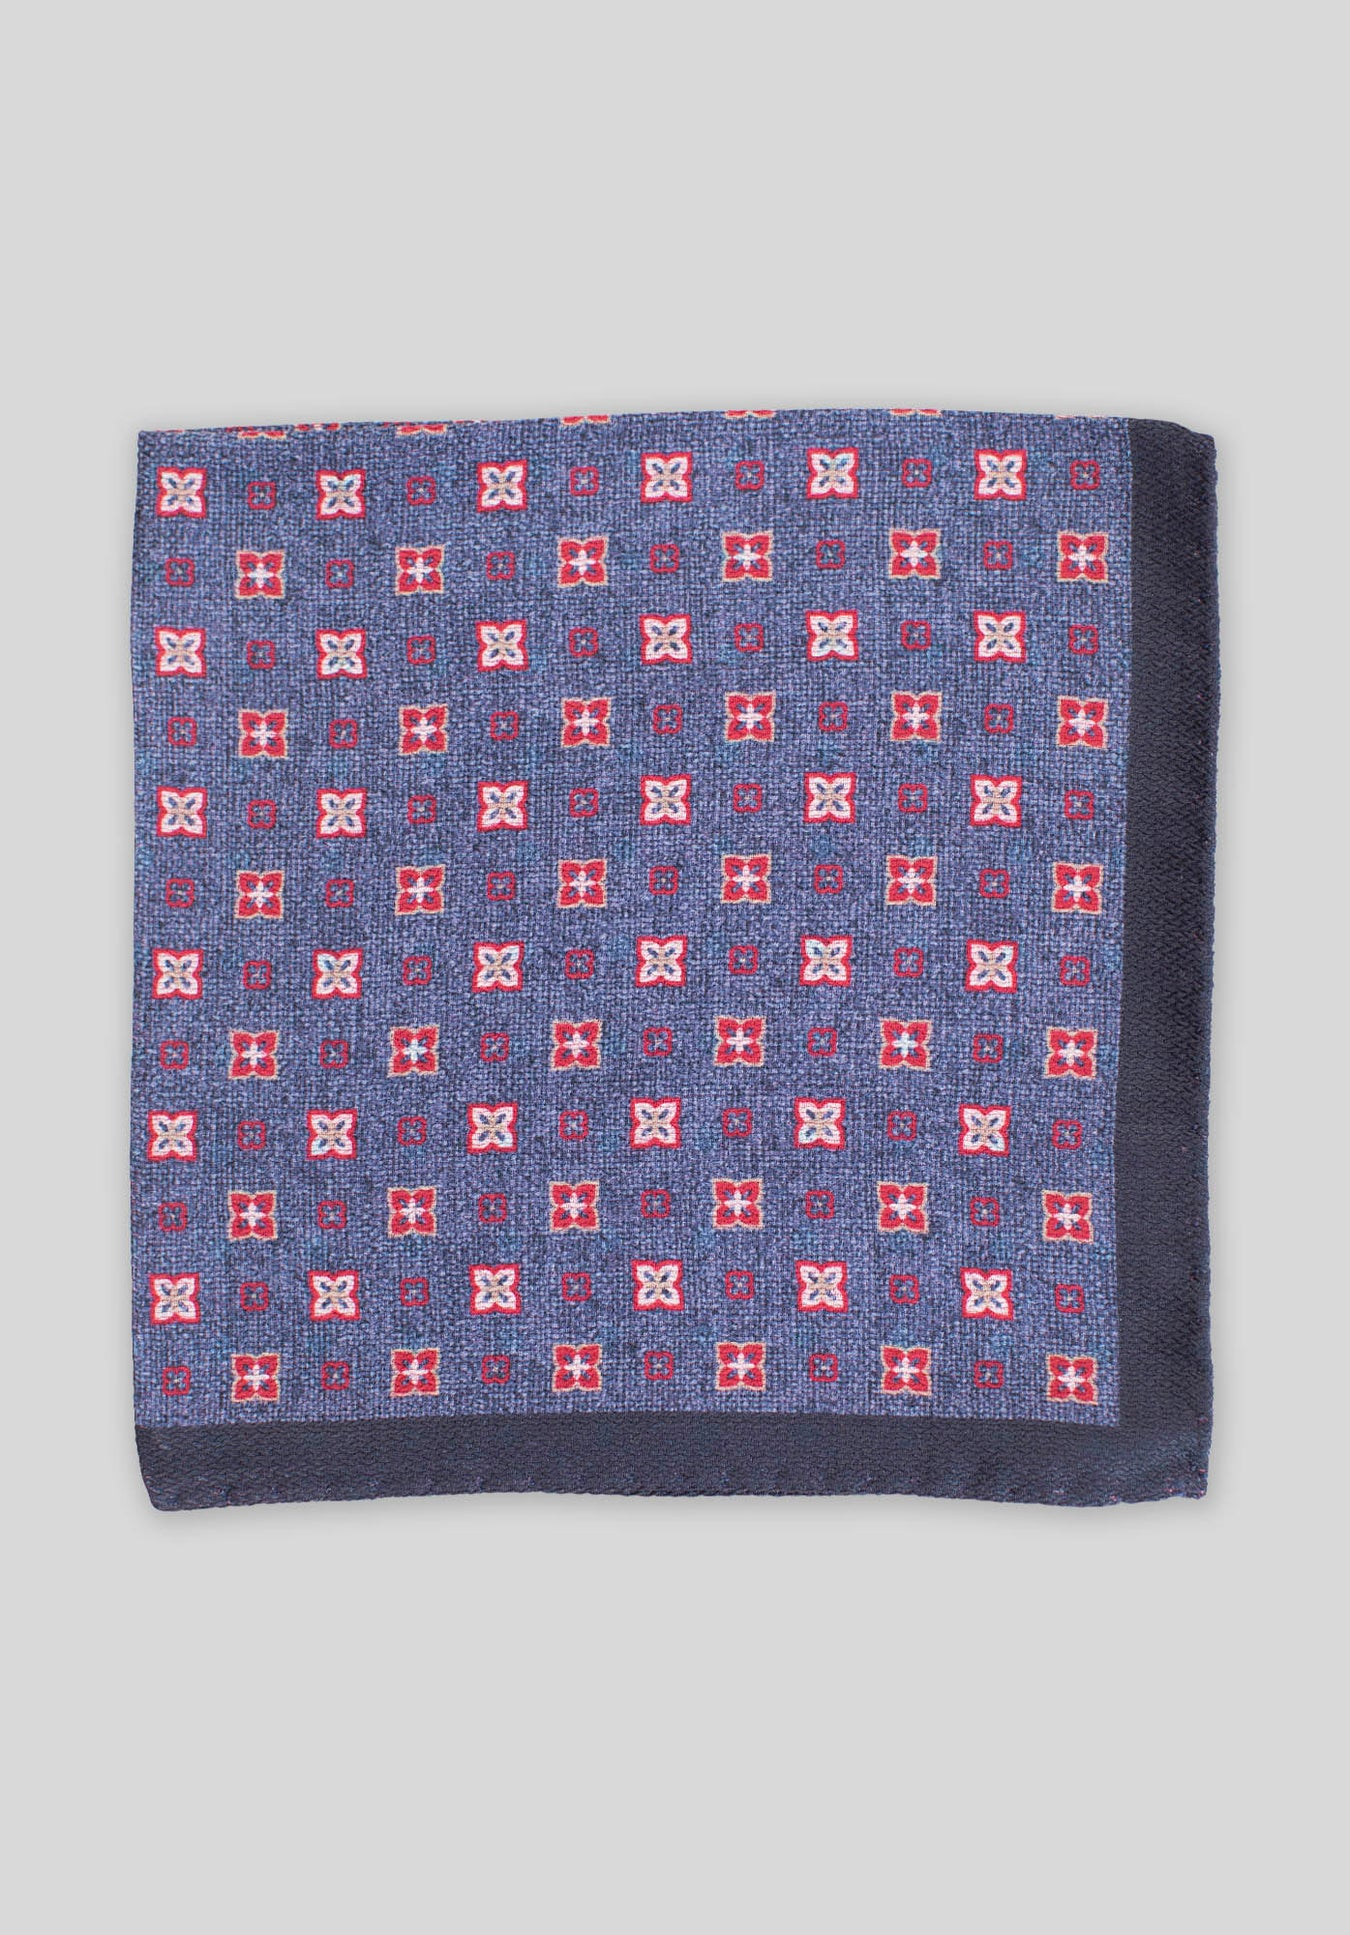 DOUBLE PRINT FOULARD POCHETTE - Red